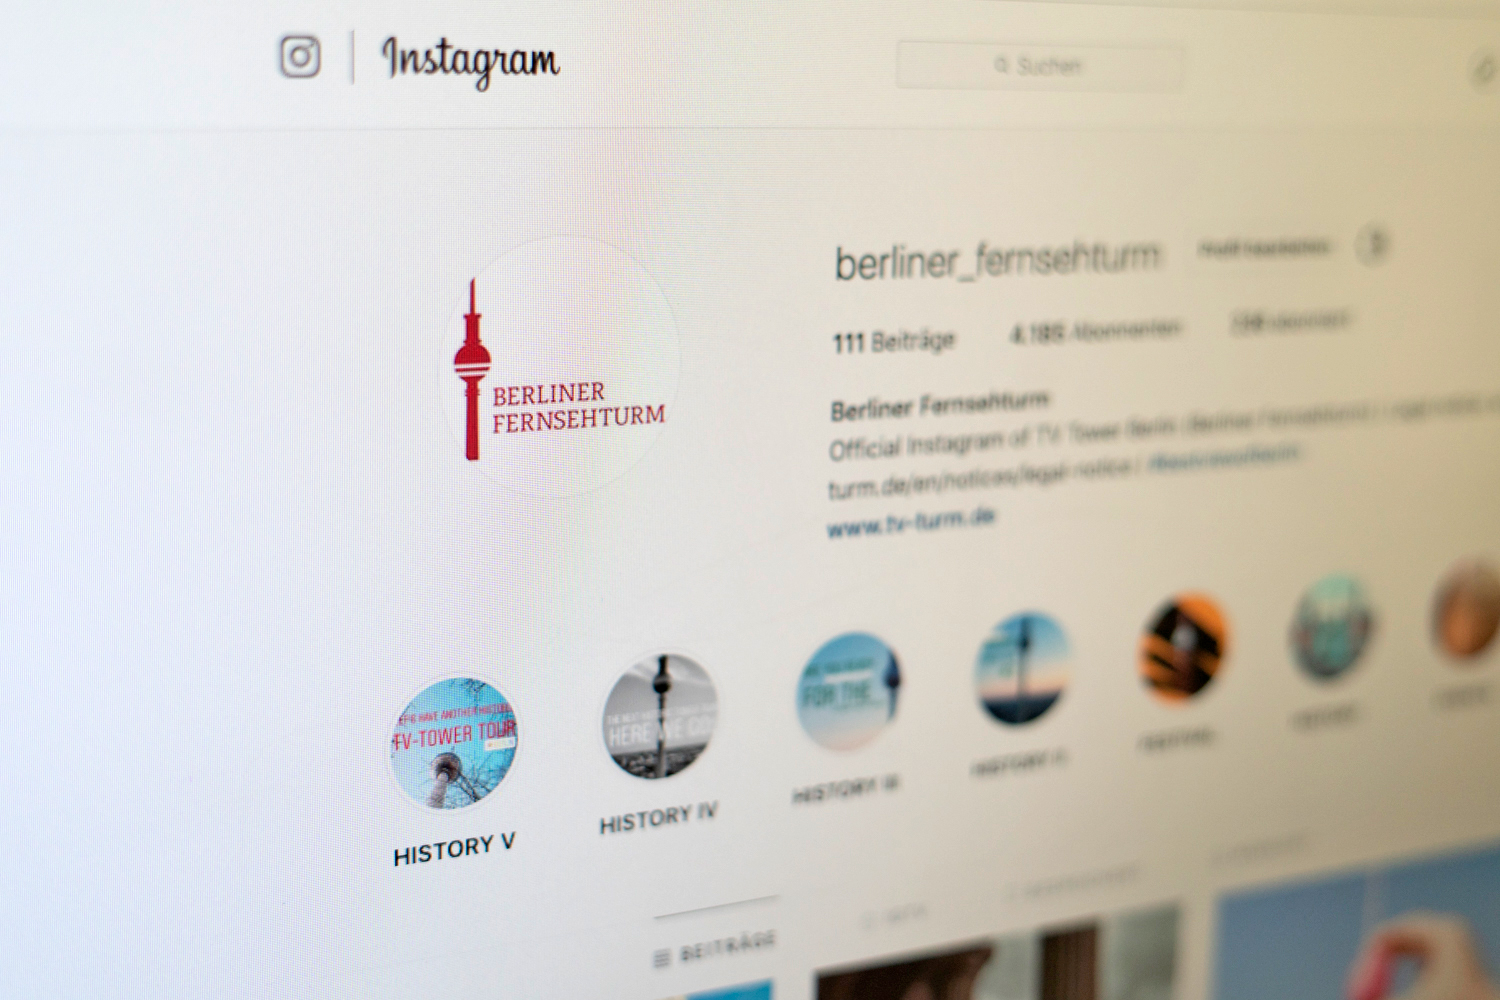 Instagram-Community-Management